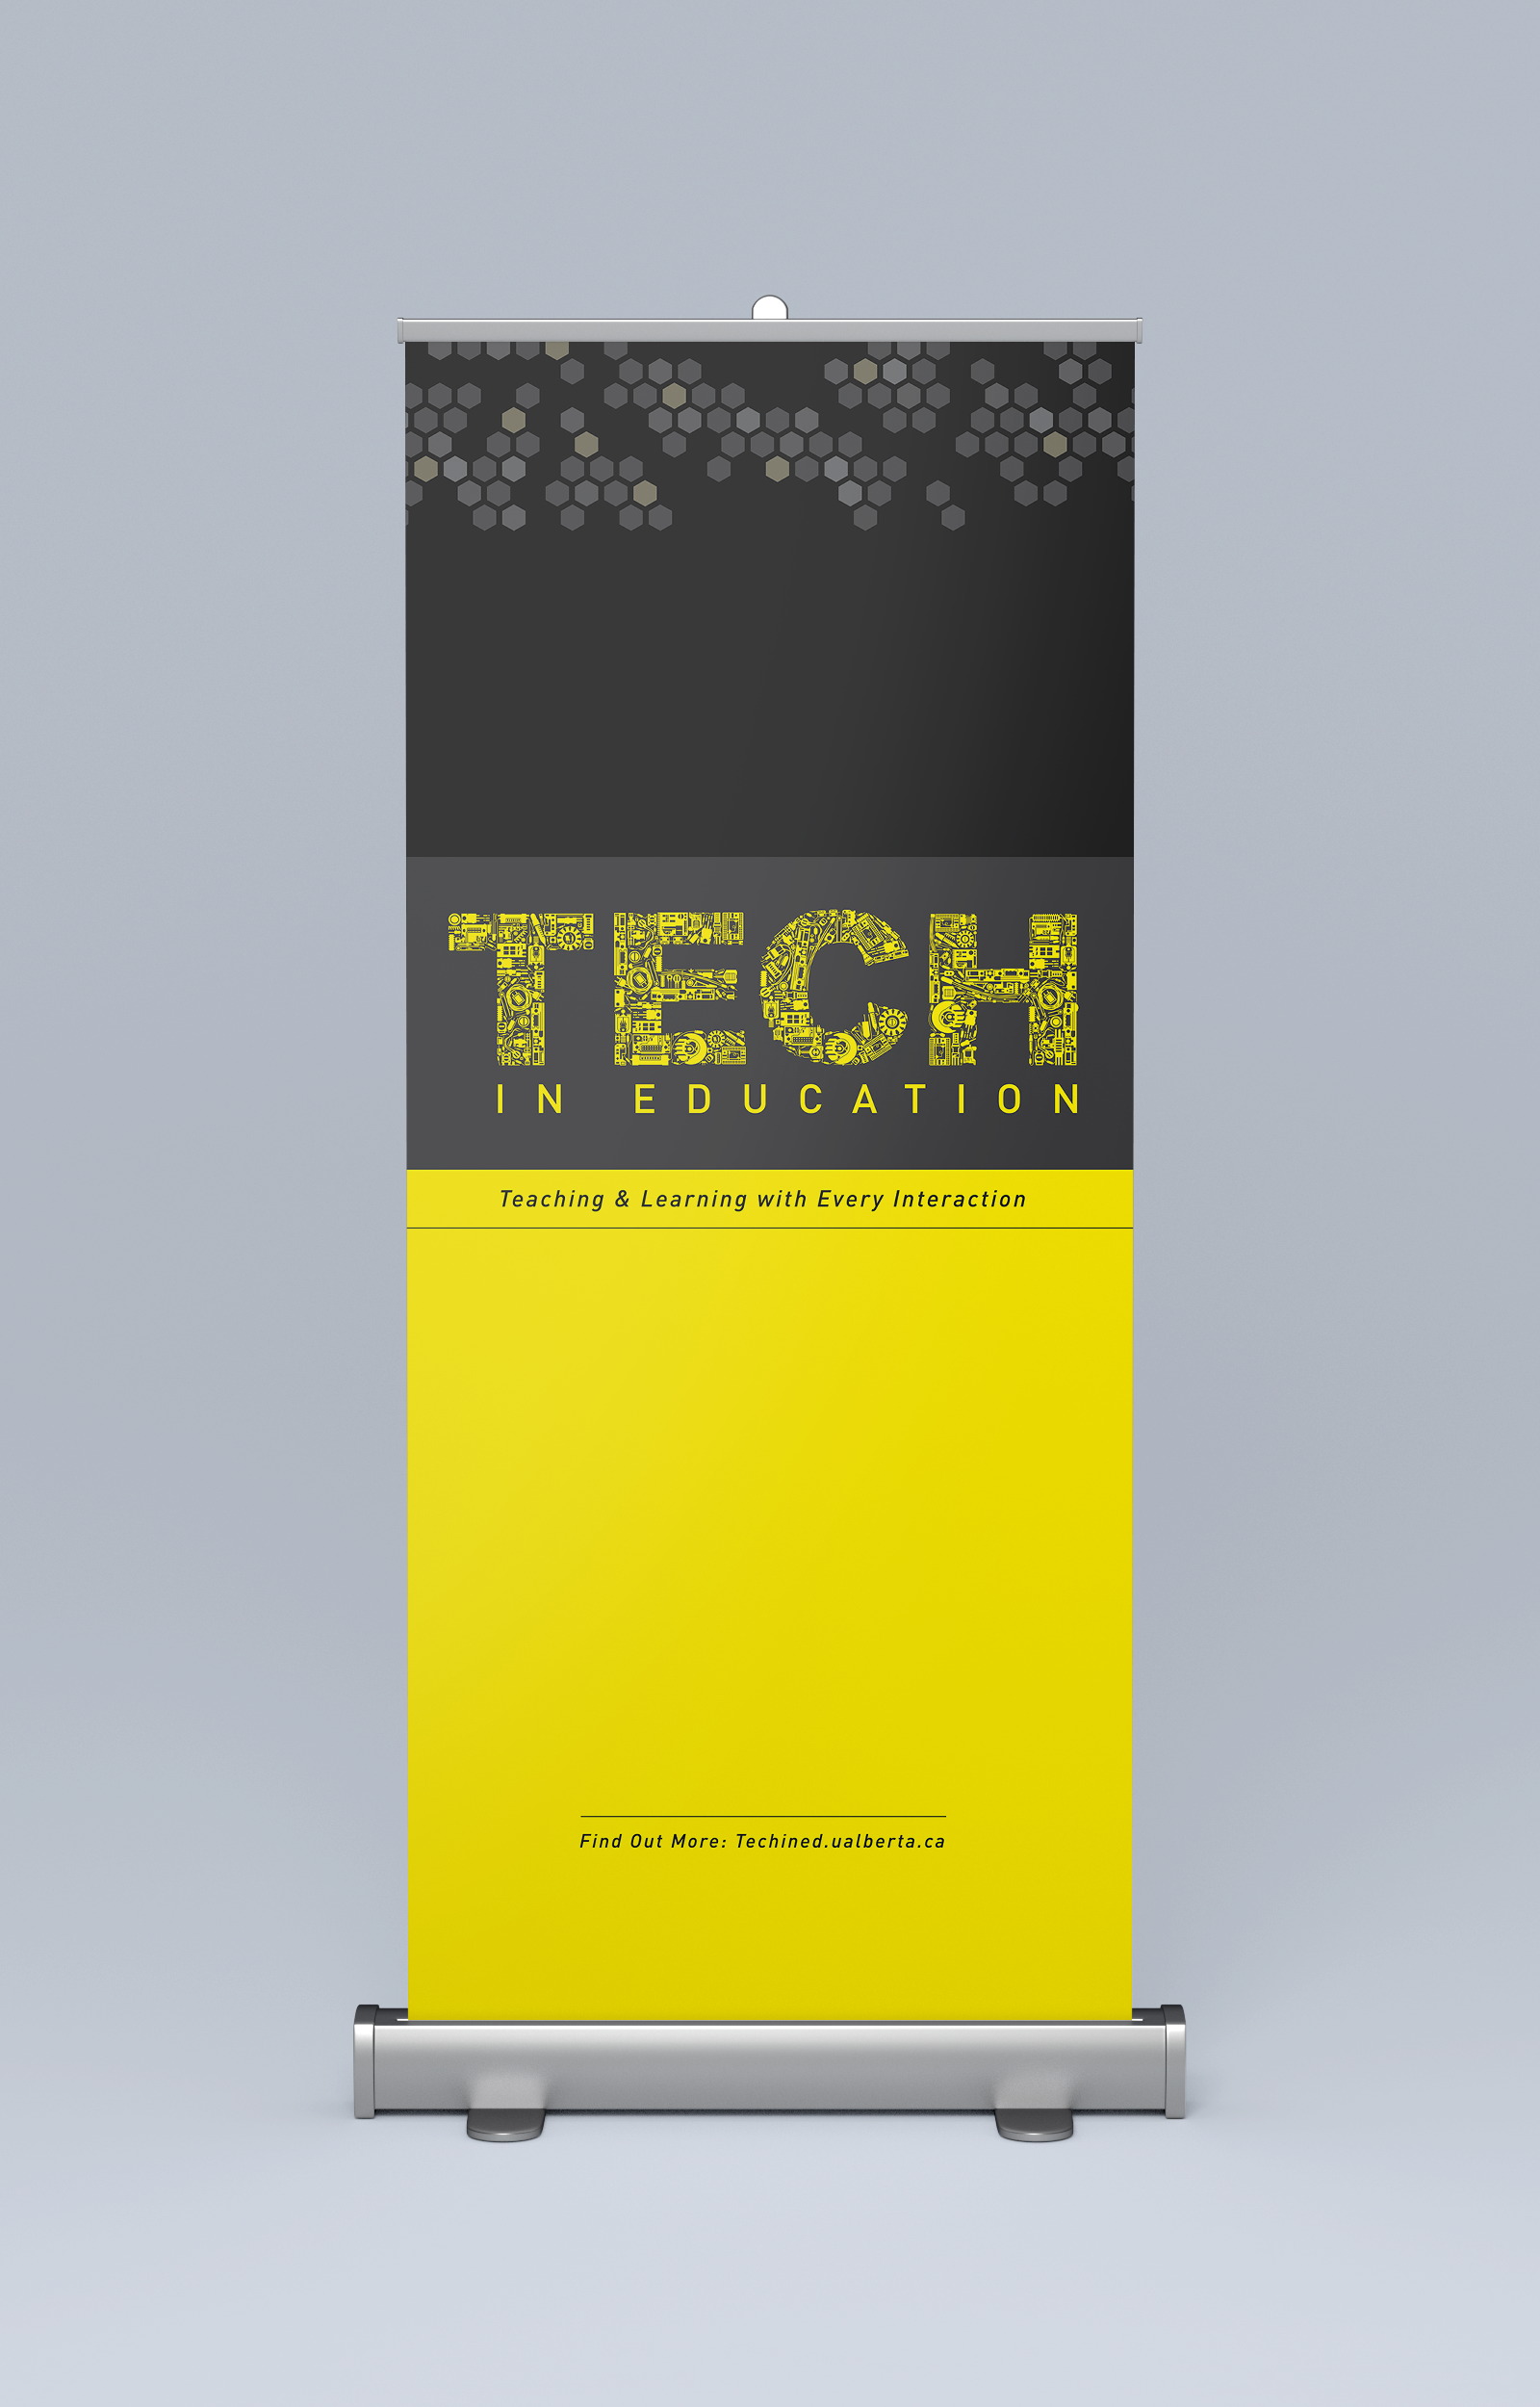 Mockup_Rollup_front_85x200 2.png